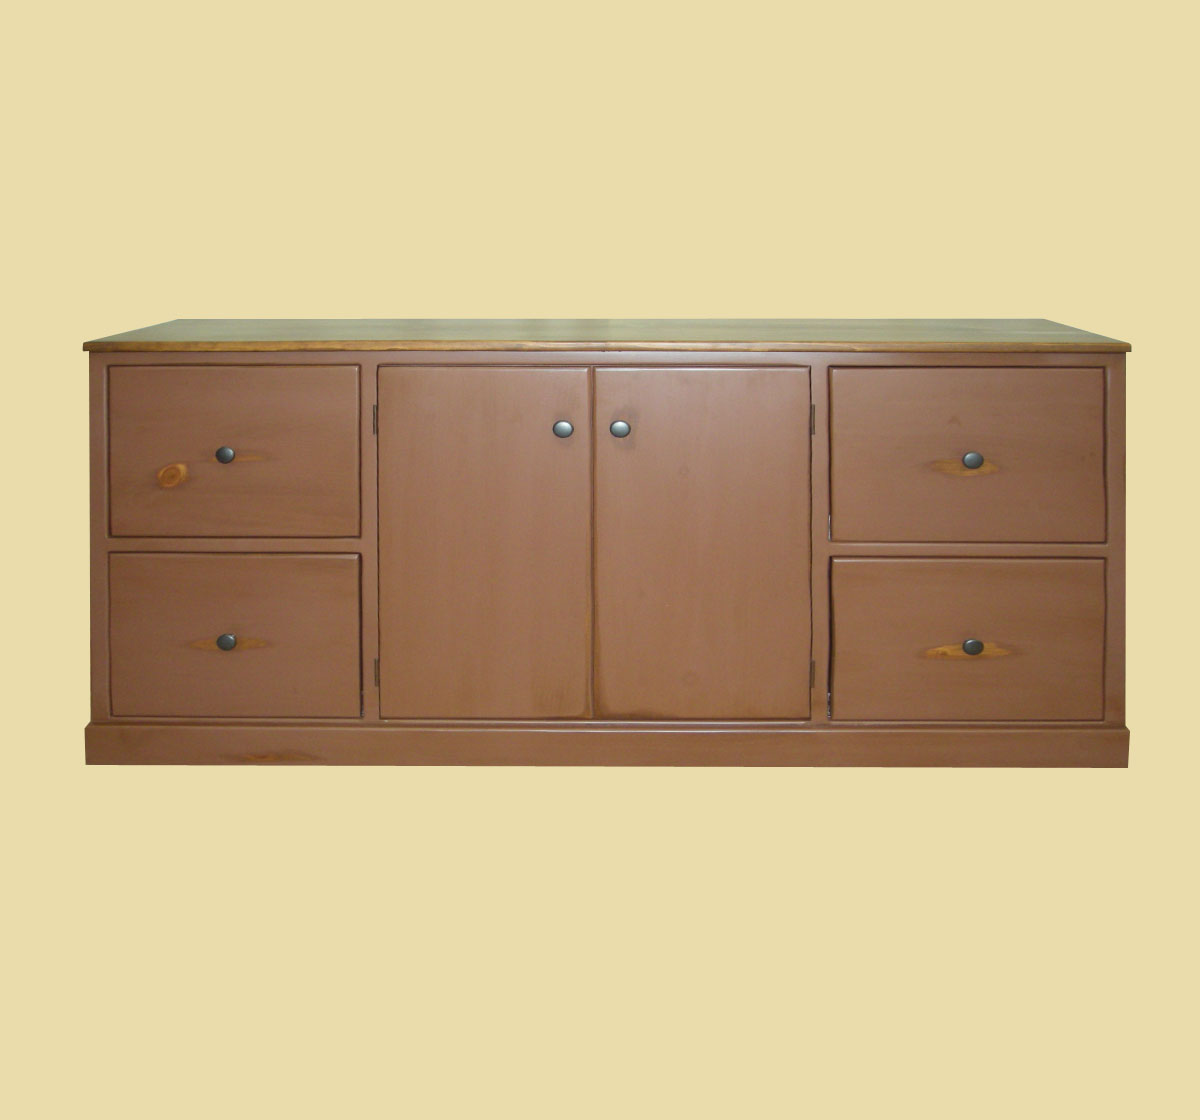 Credenza Office Furniture 28 Images Office Furniture Credenza Style Epic Office Furniture